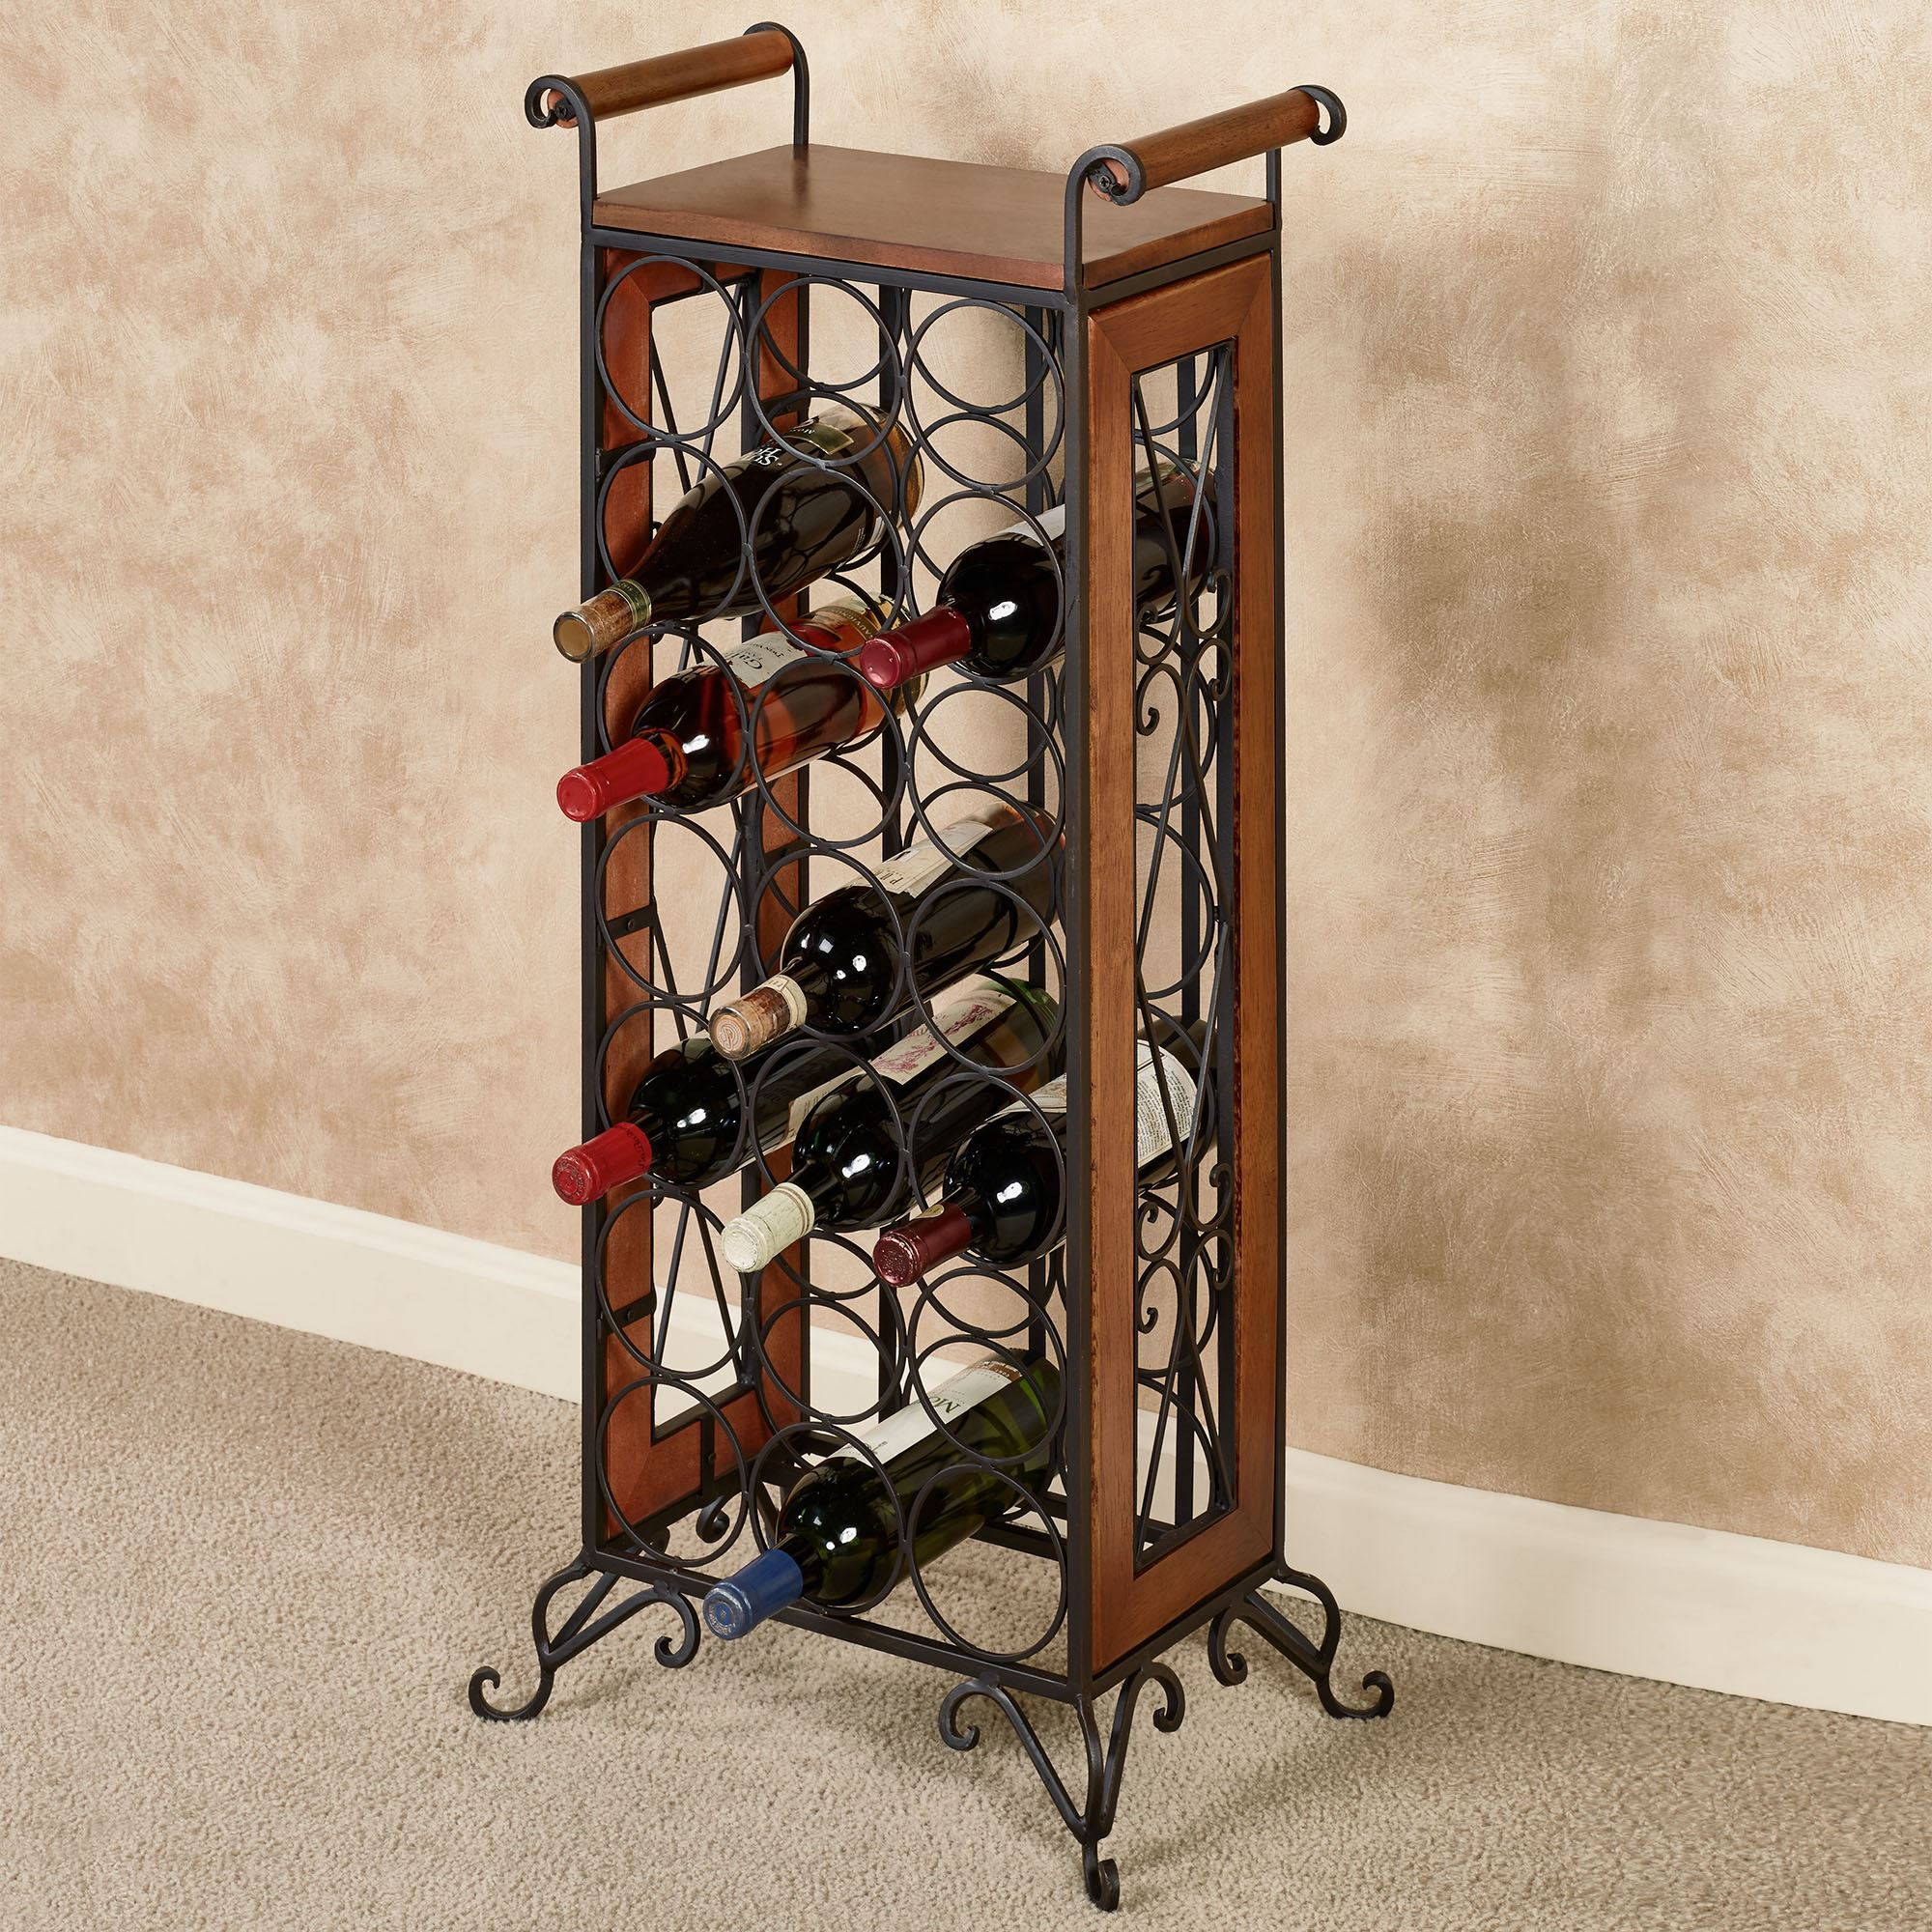 Uncategorized Floor Standing Wine Racks milano floor standing wine bottle rack windsor oak click to expand